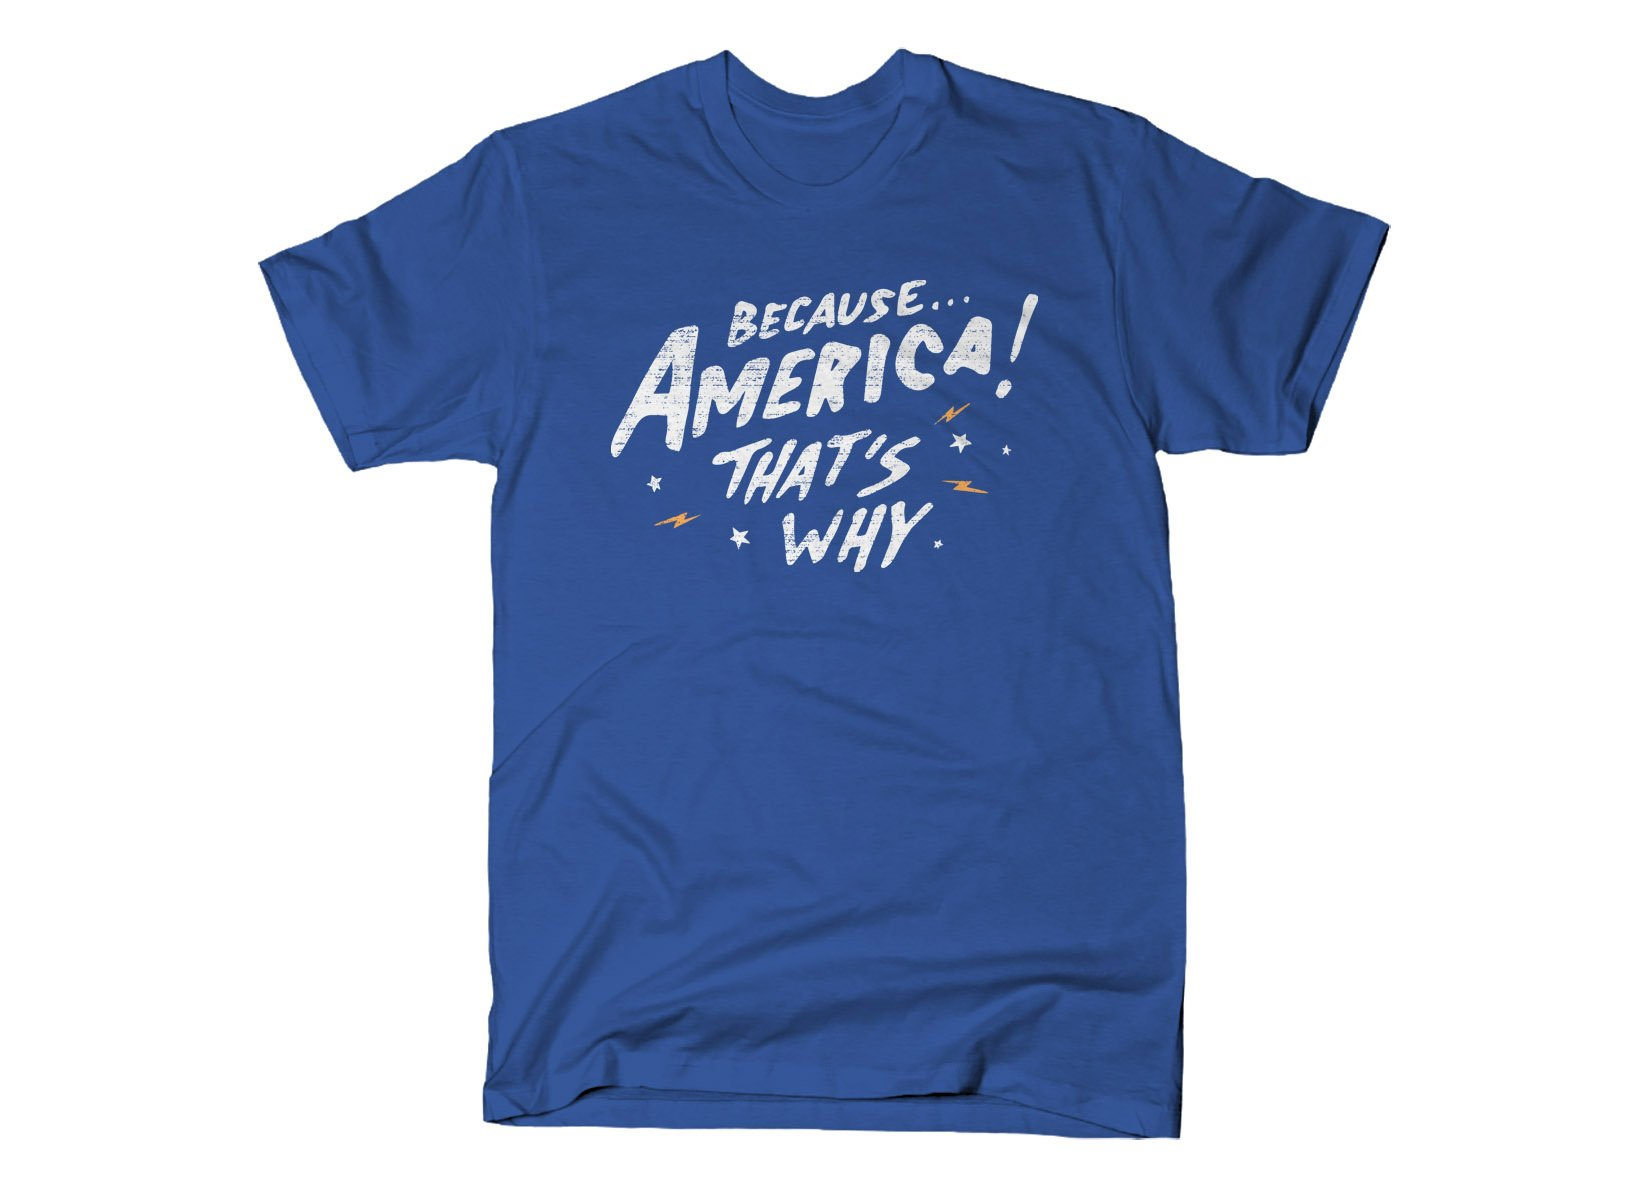 Because America! That's Why on Mens T-Shirt